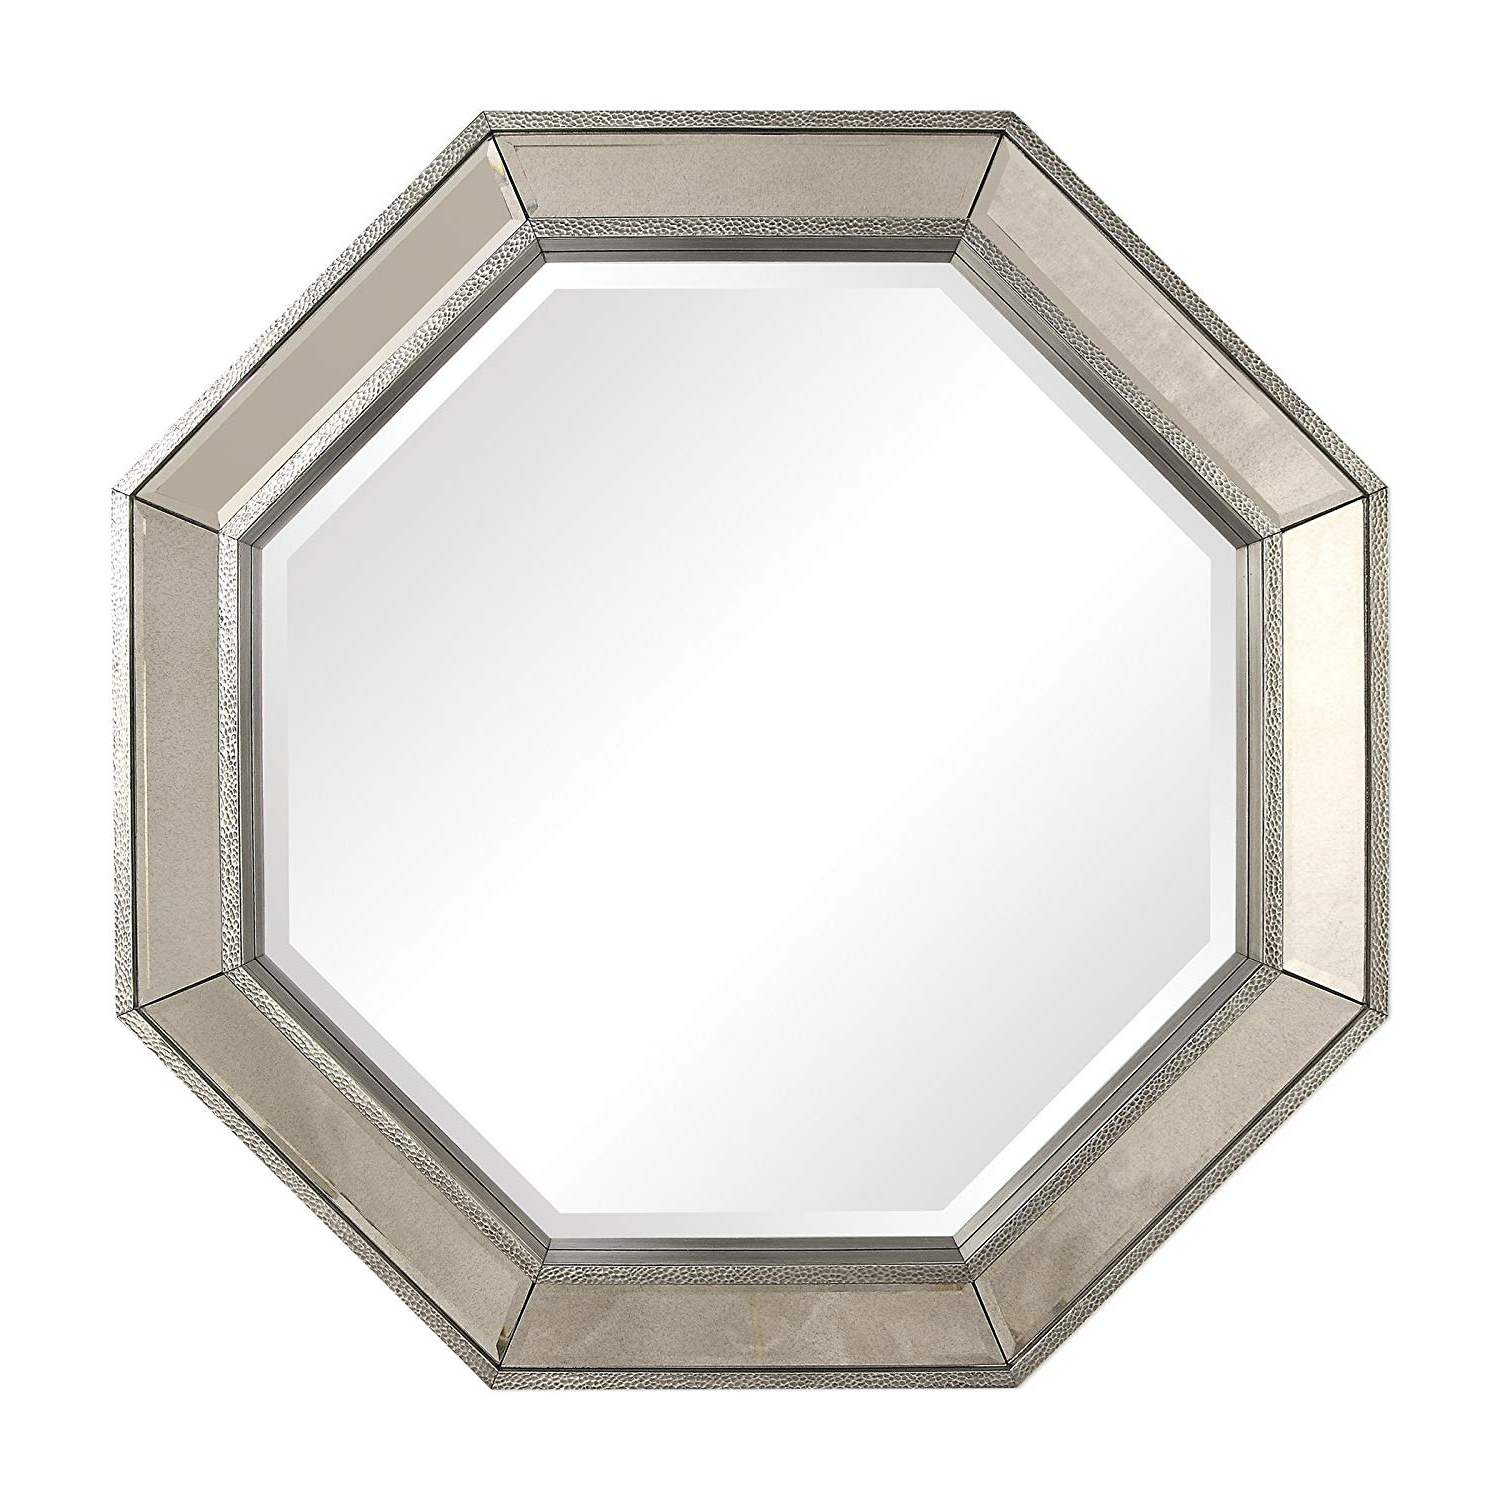 Amazon: My Swanky Home Glam Octagon Silver Mirror Framed Wall For Well Liked Octagon Wall Mirrors (View 19 of 20)